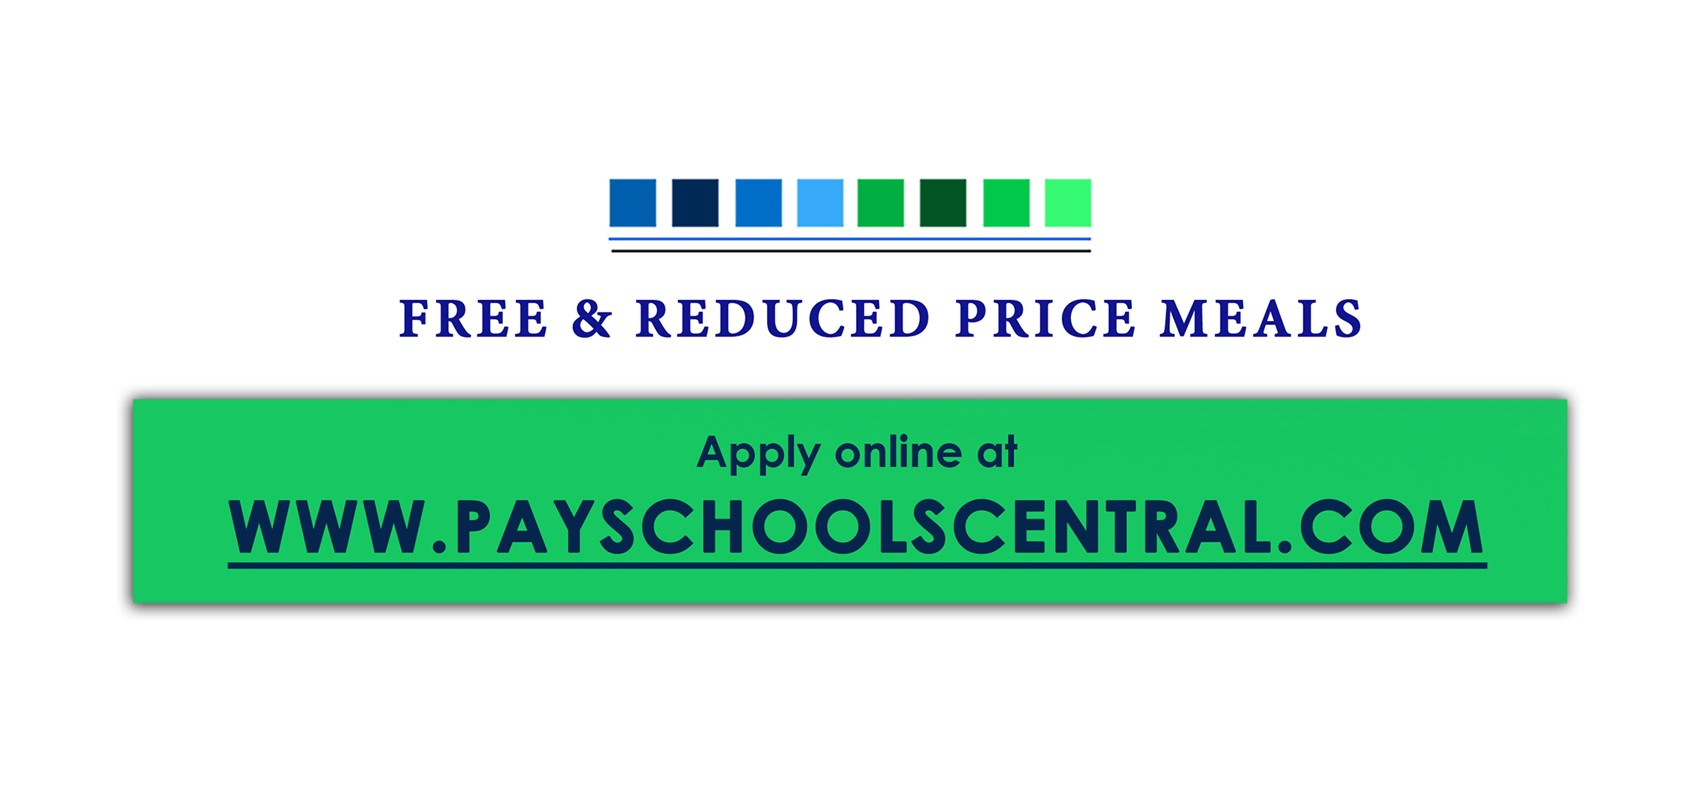 www.payschoolscentral.com for free and reduced price meals.